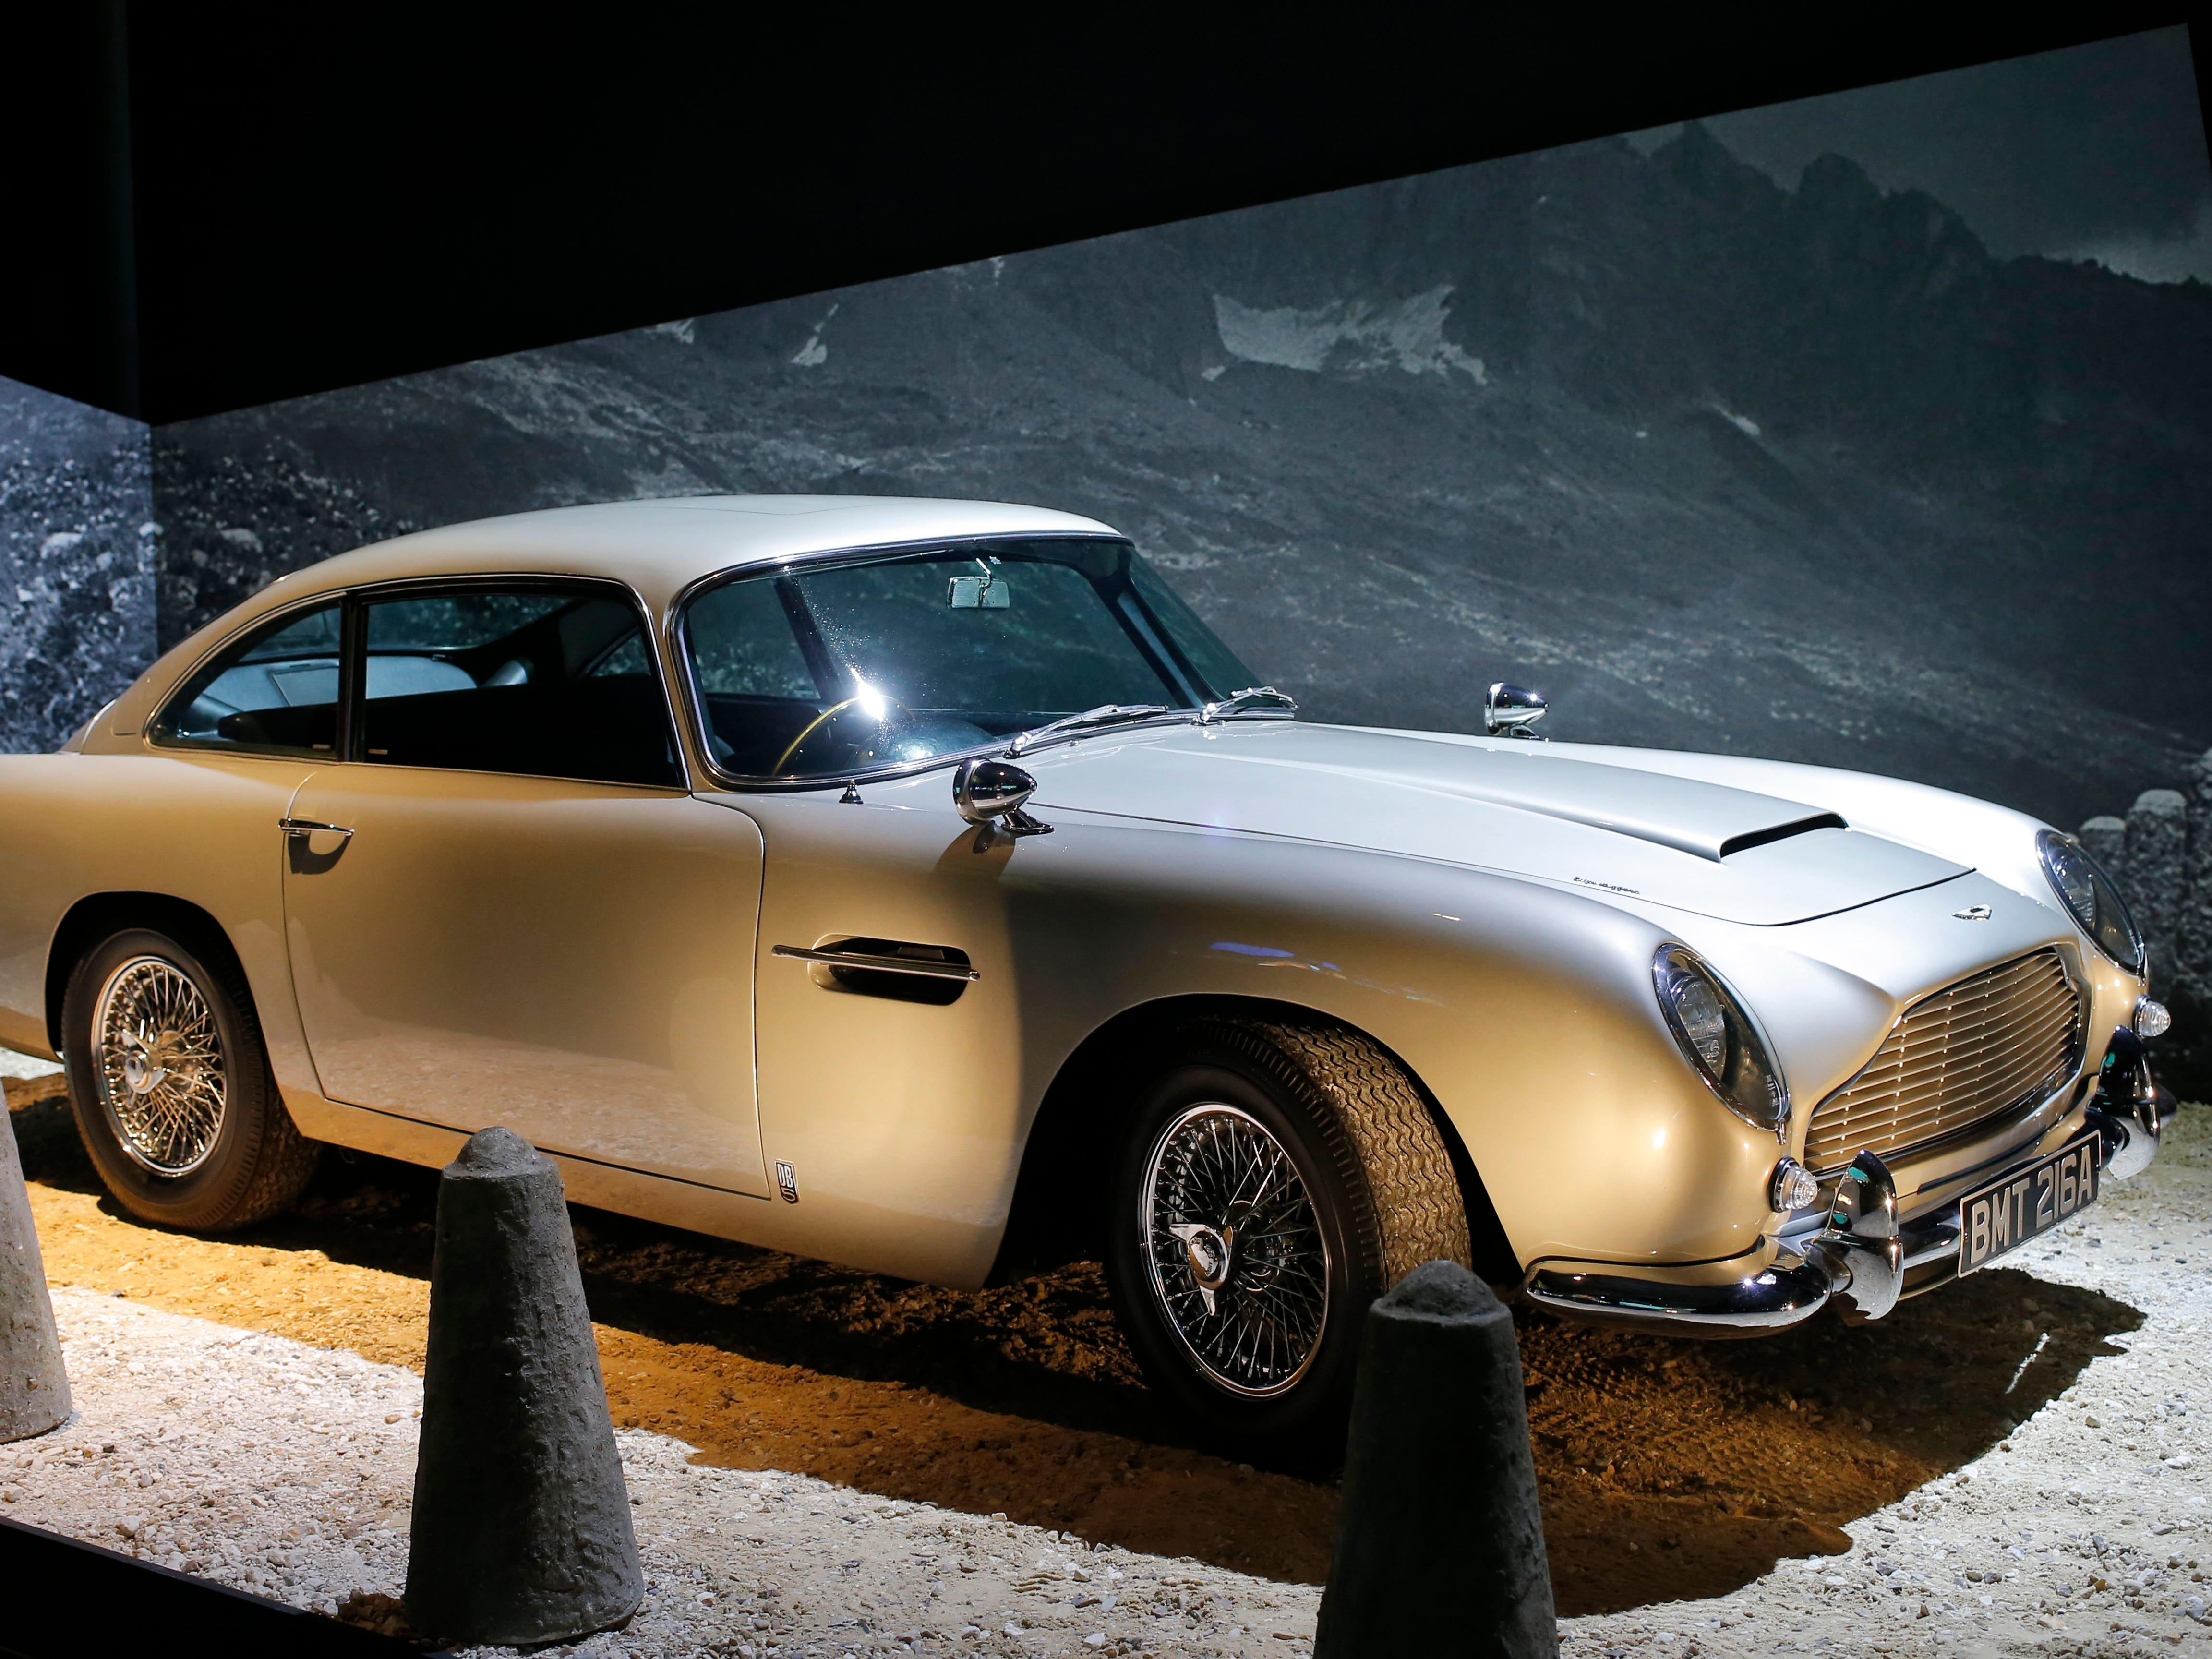 """An Aston Martin DB5 from the James Bond film """"Goldfinger"""" is displayed during a press presentation of the exhibition """"The Designing 007: Fifty Years of Bond Style"""" at the Grande Halle de la Villette in Paris, France, Wednesday April 13, 2016. (AP Photo/Francois Mori)"""